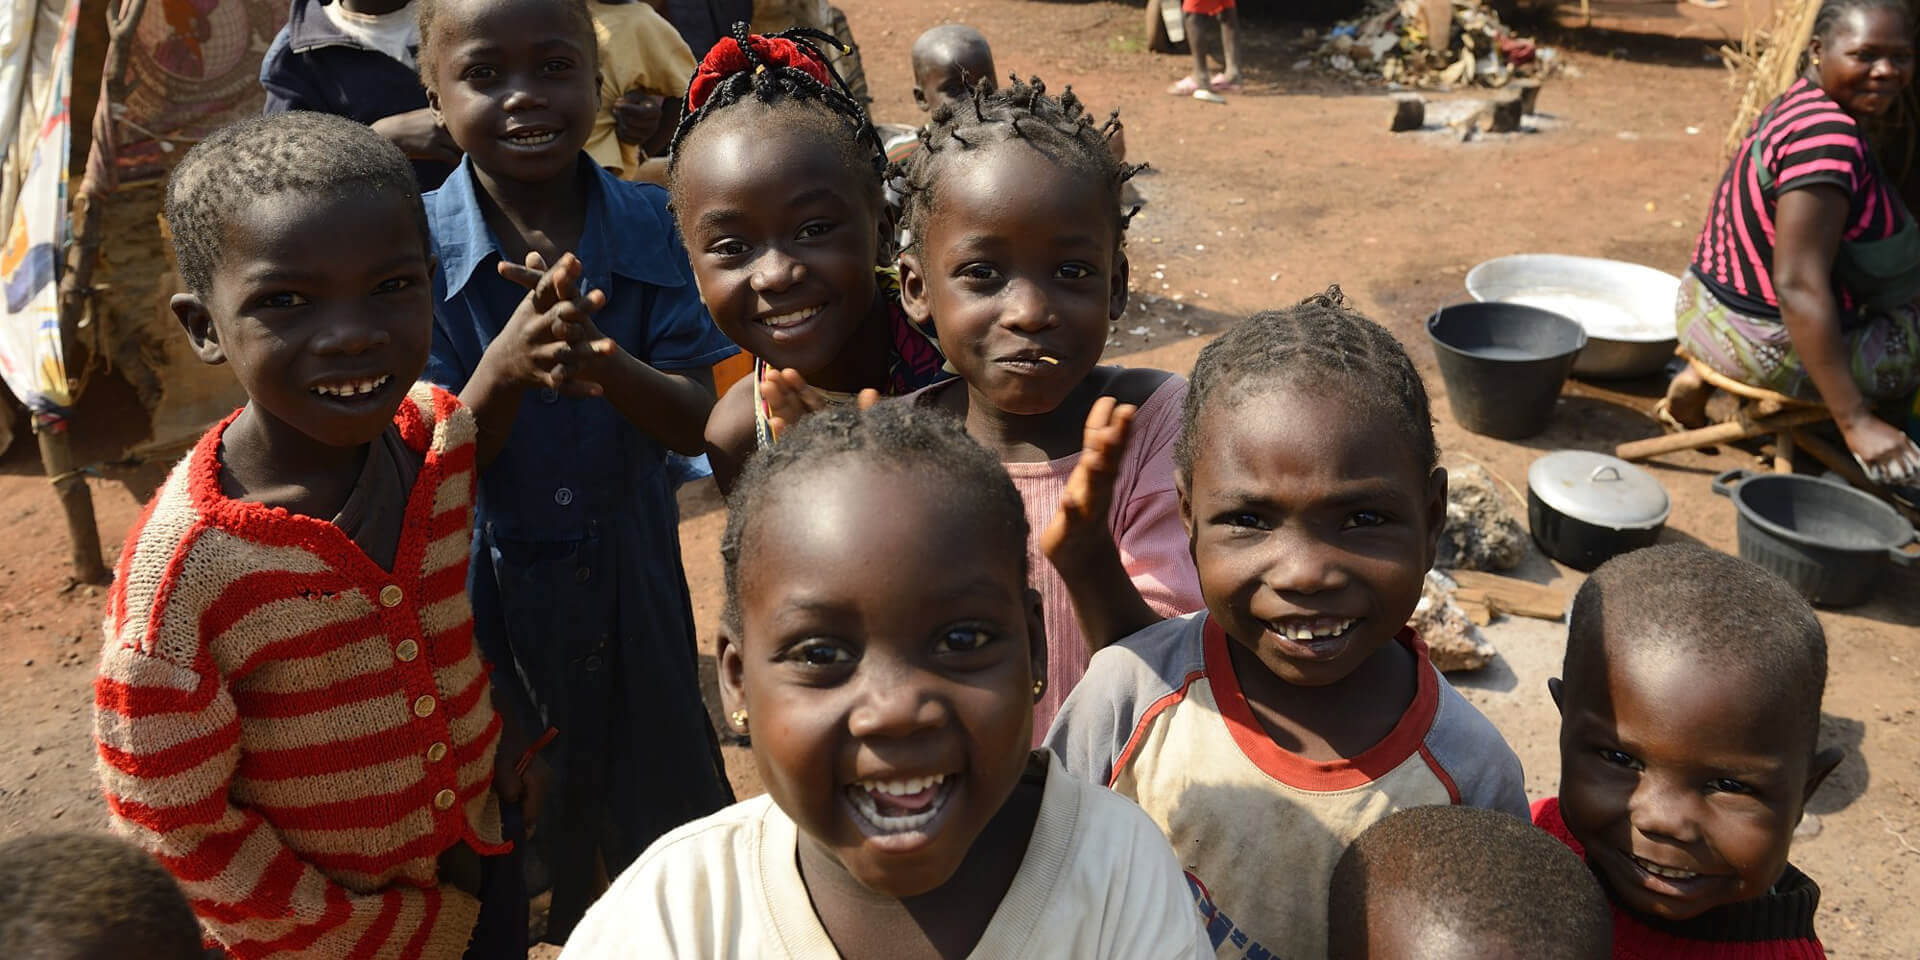 Smiling children from African nation.